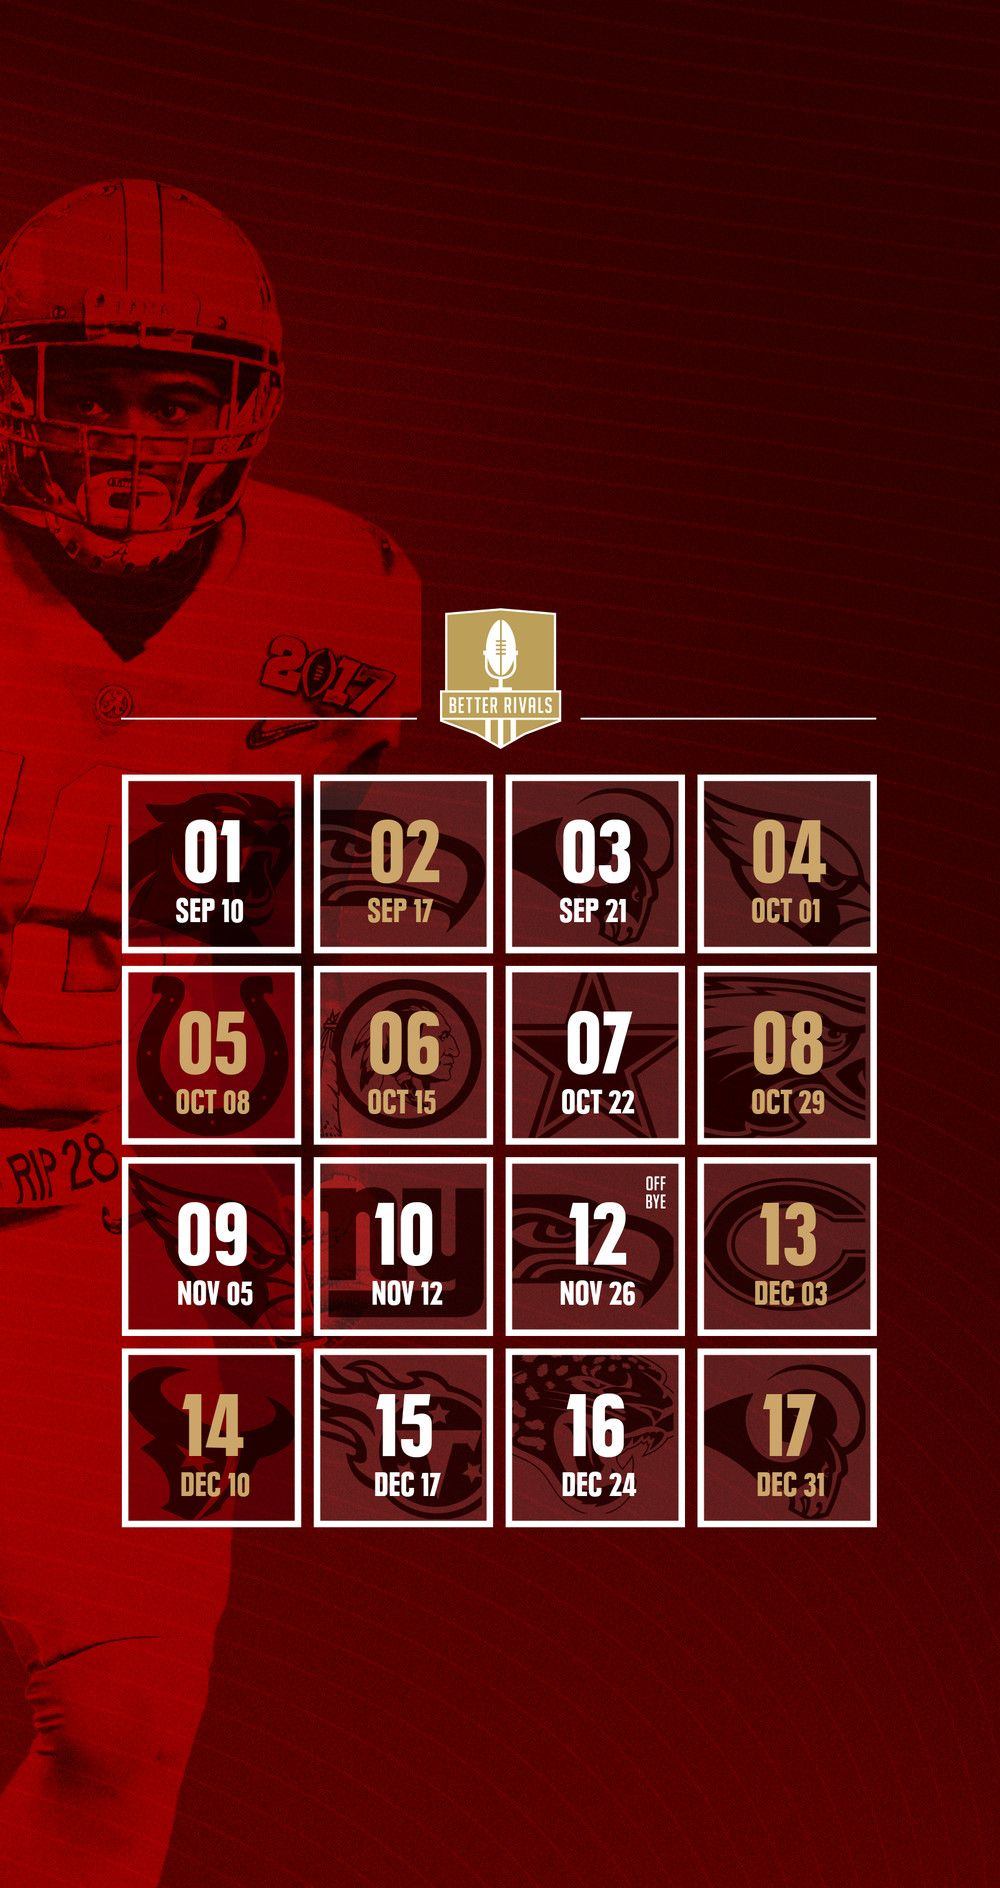 49ers 2017 schedule wallpapers for iphone android desktop niners 49ers 2017 schedule wallpapers for iphone android desktop niners nationclockmenumore arrowstubhub logo get ready for the season by downloading the new voltagebd Choice Image